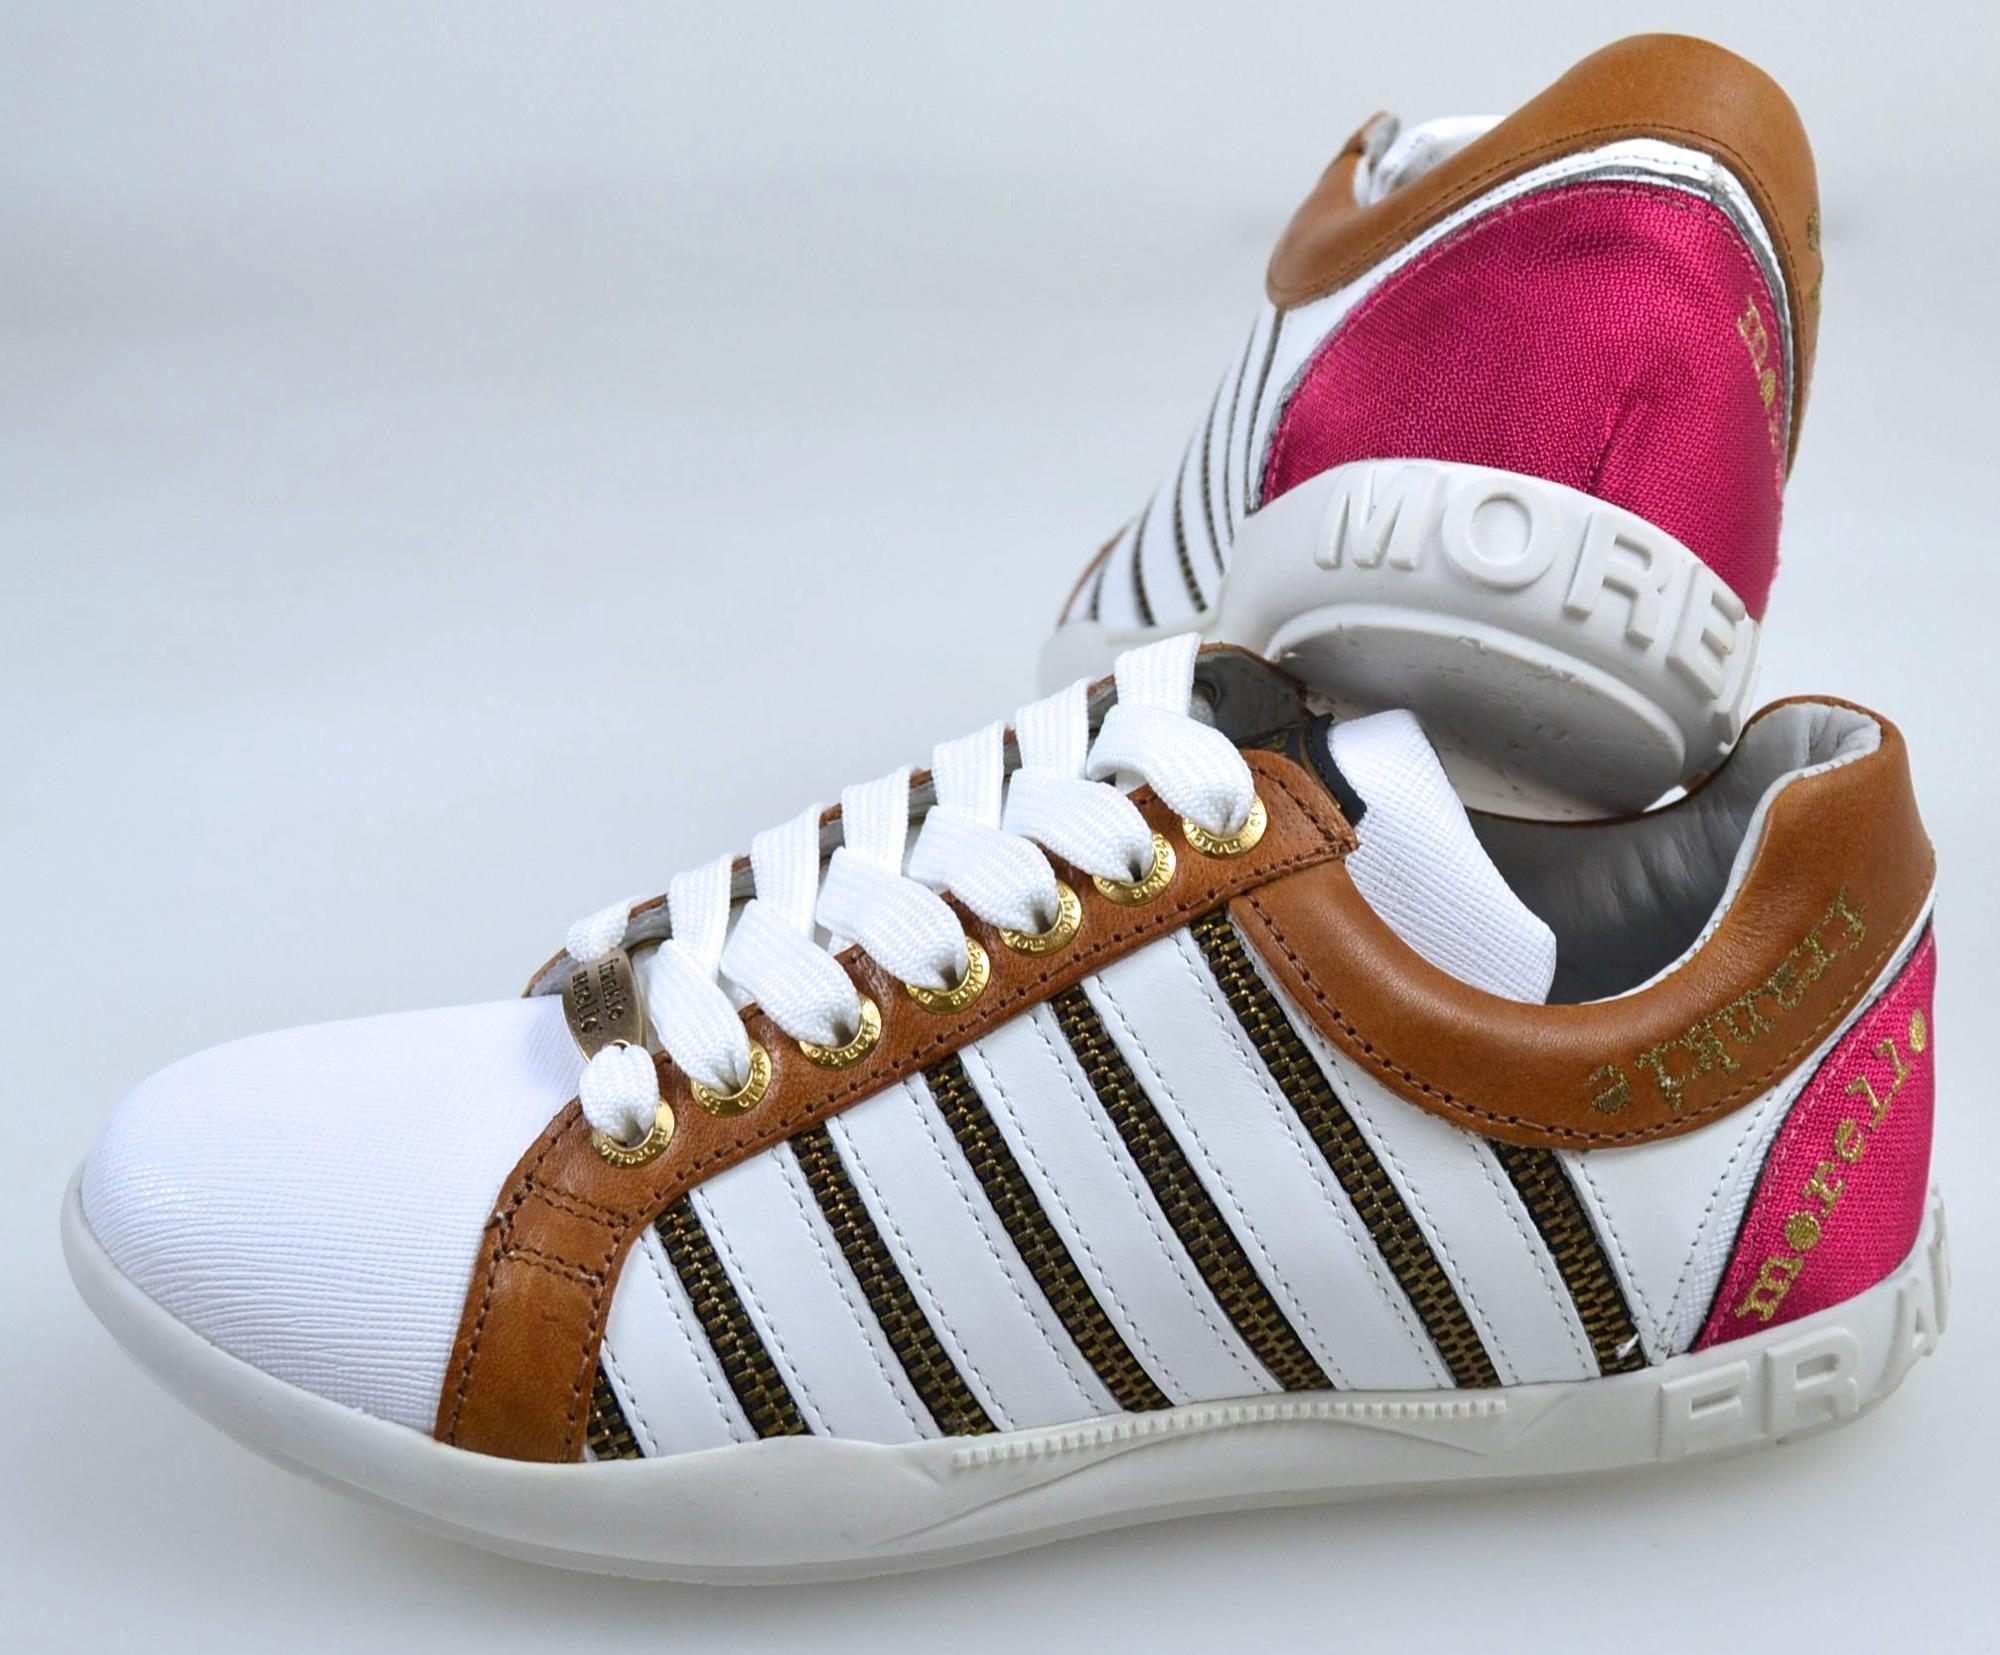 eba67ac30eff6 FRANKIE MORELLO WOMAN SNEAKER SHOES CASUAL FREE TIME LEATHER CODE 8503